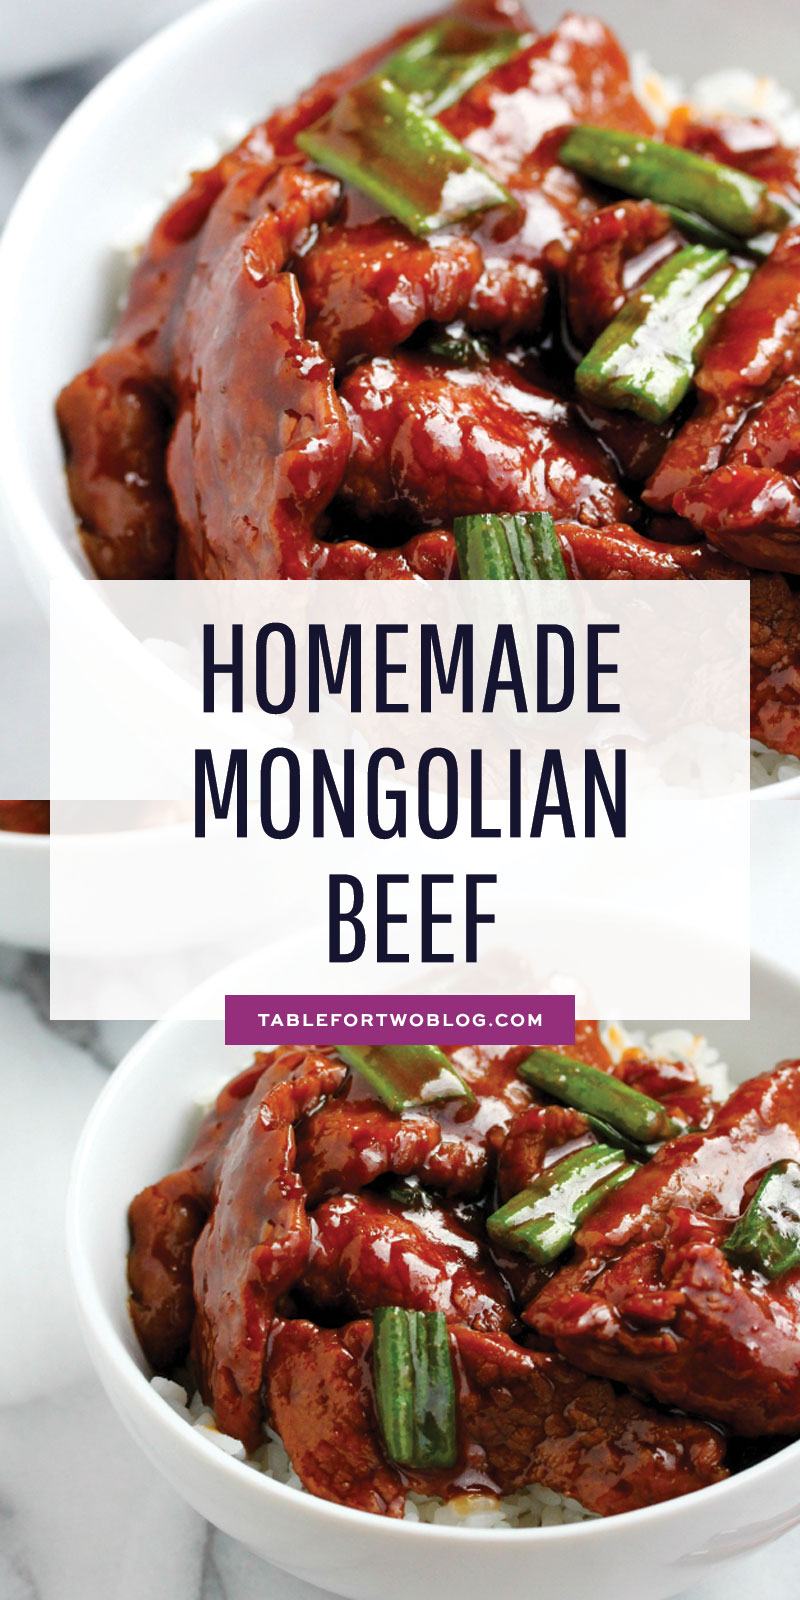 This mongolian beef is so easy to make at home! You won't need to call your local take-out place anymore once you make this yourself at home! #mongolianbeef #chinesetakeout #chinesefood #takeout #beefrecipes #chineserecipes